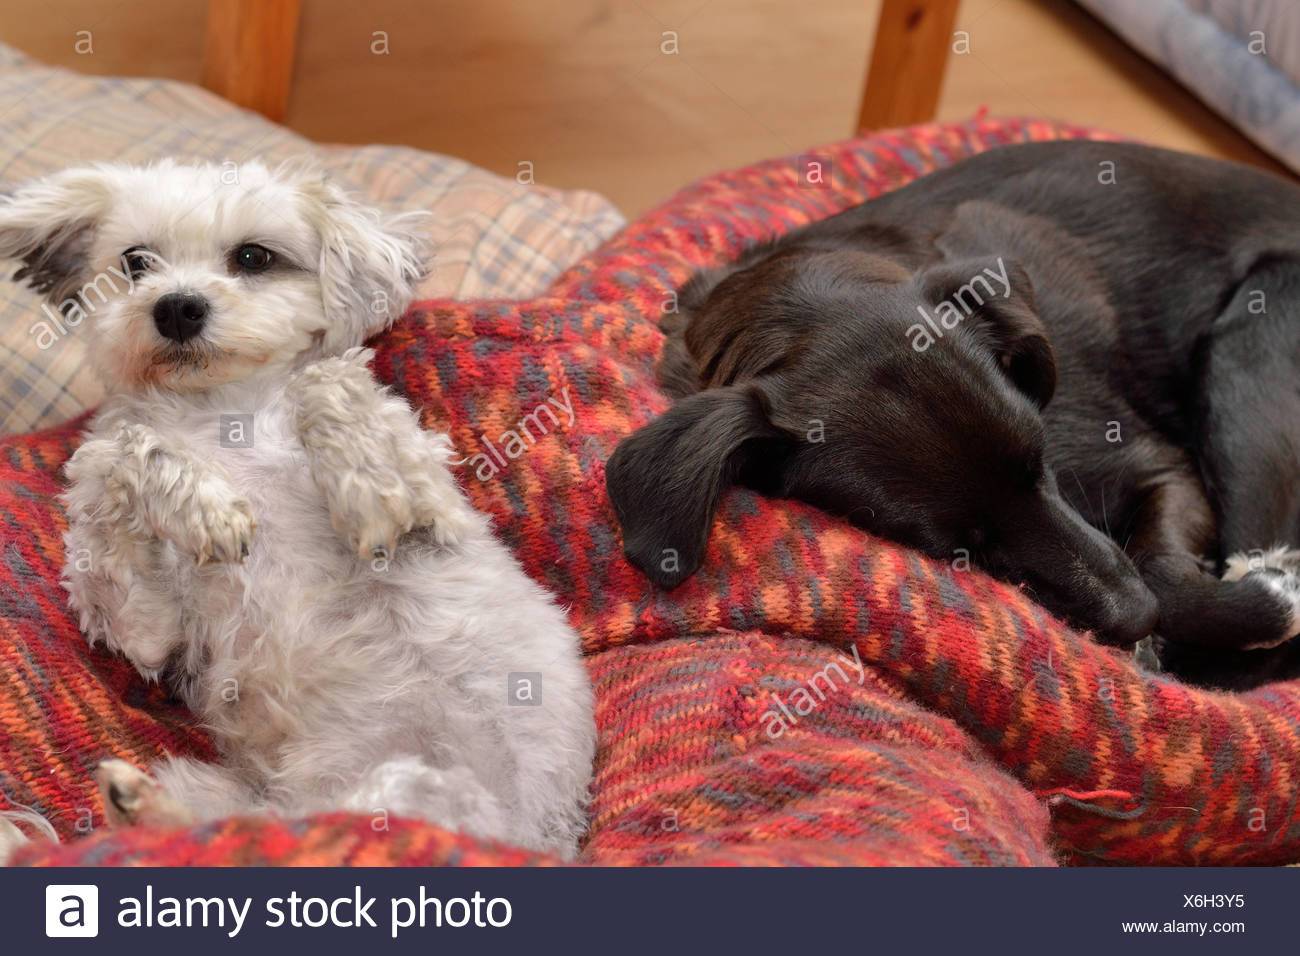 Two dogs are in the dog bed - Stock Image